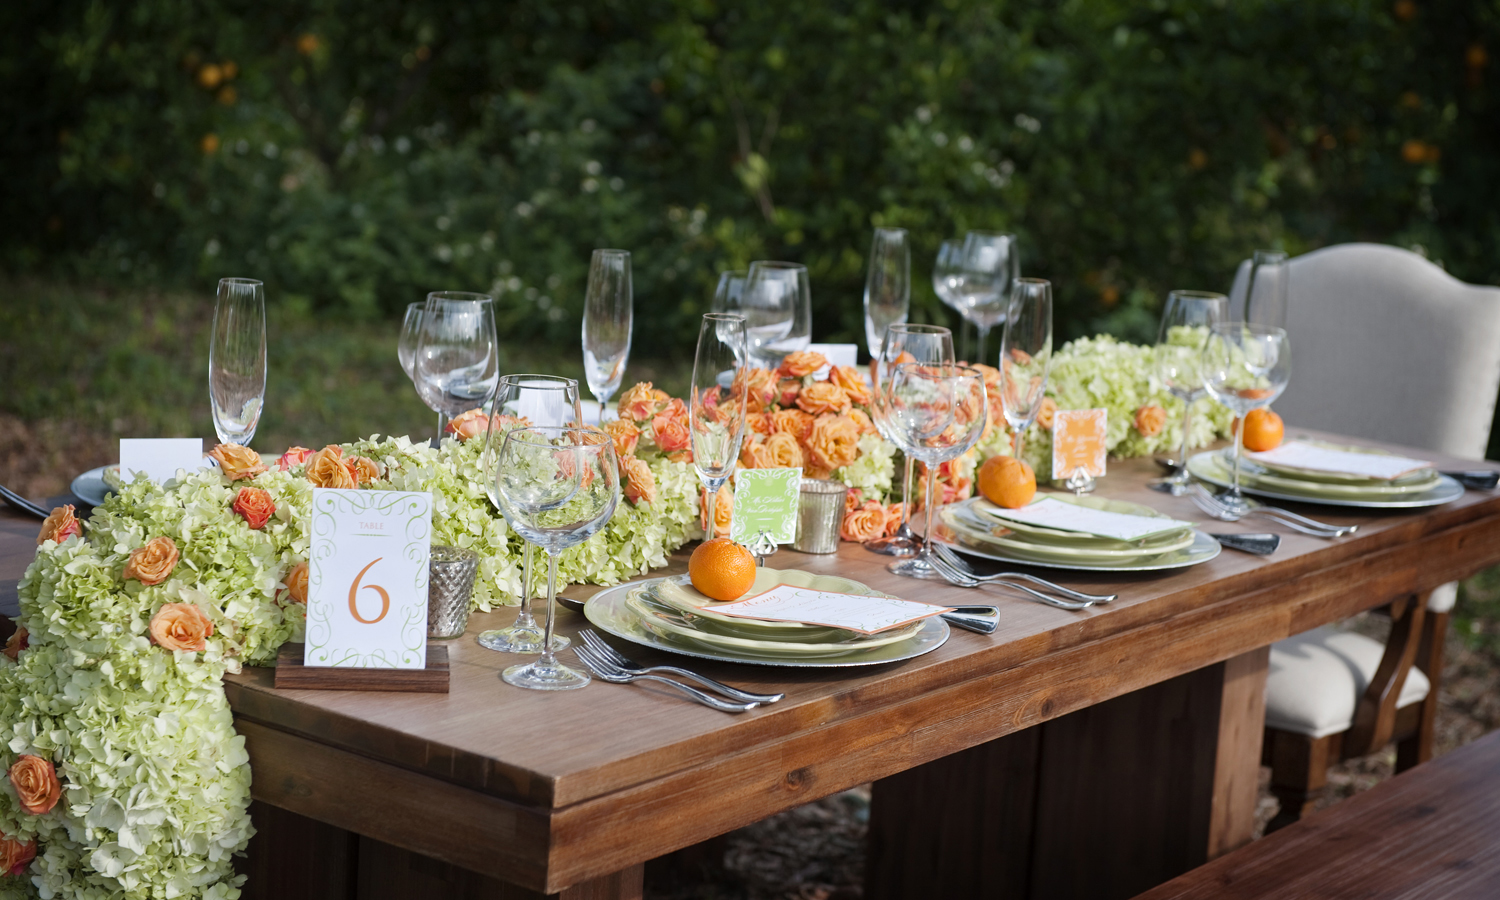 Wedding Photography: Damon Tucci | Wedding Reception: Showcase of Citrus